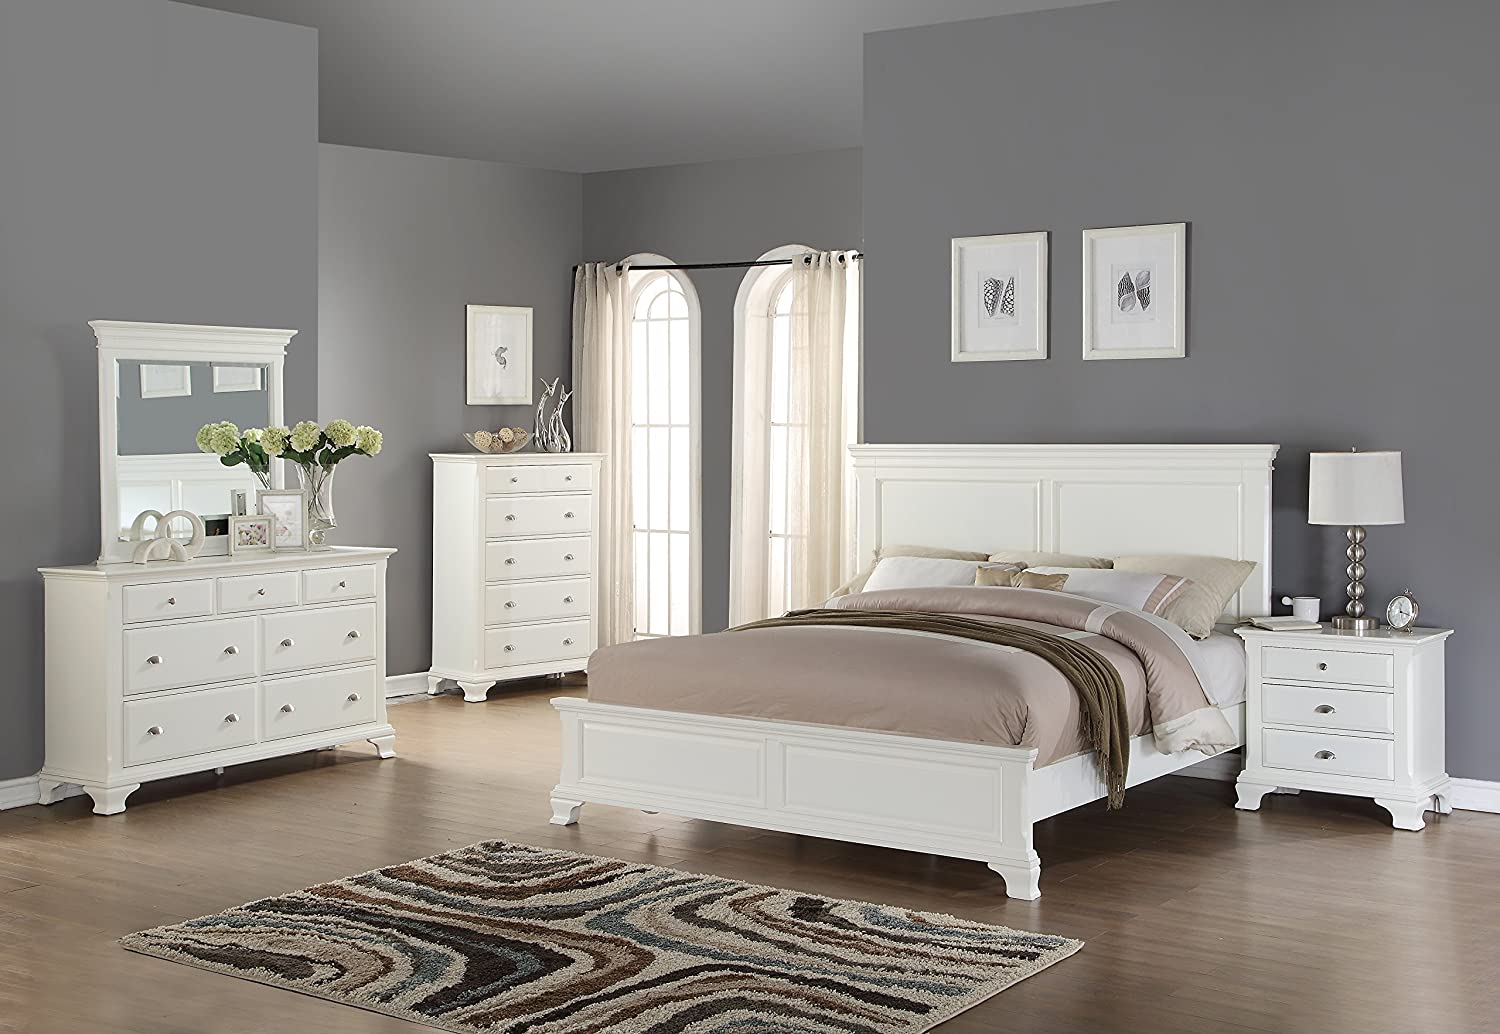 Amazon com roundhill furniture white wood bedroom furniture set includes bed dresser mirror night stand and chest queen kitchen dining